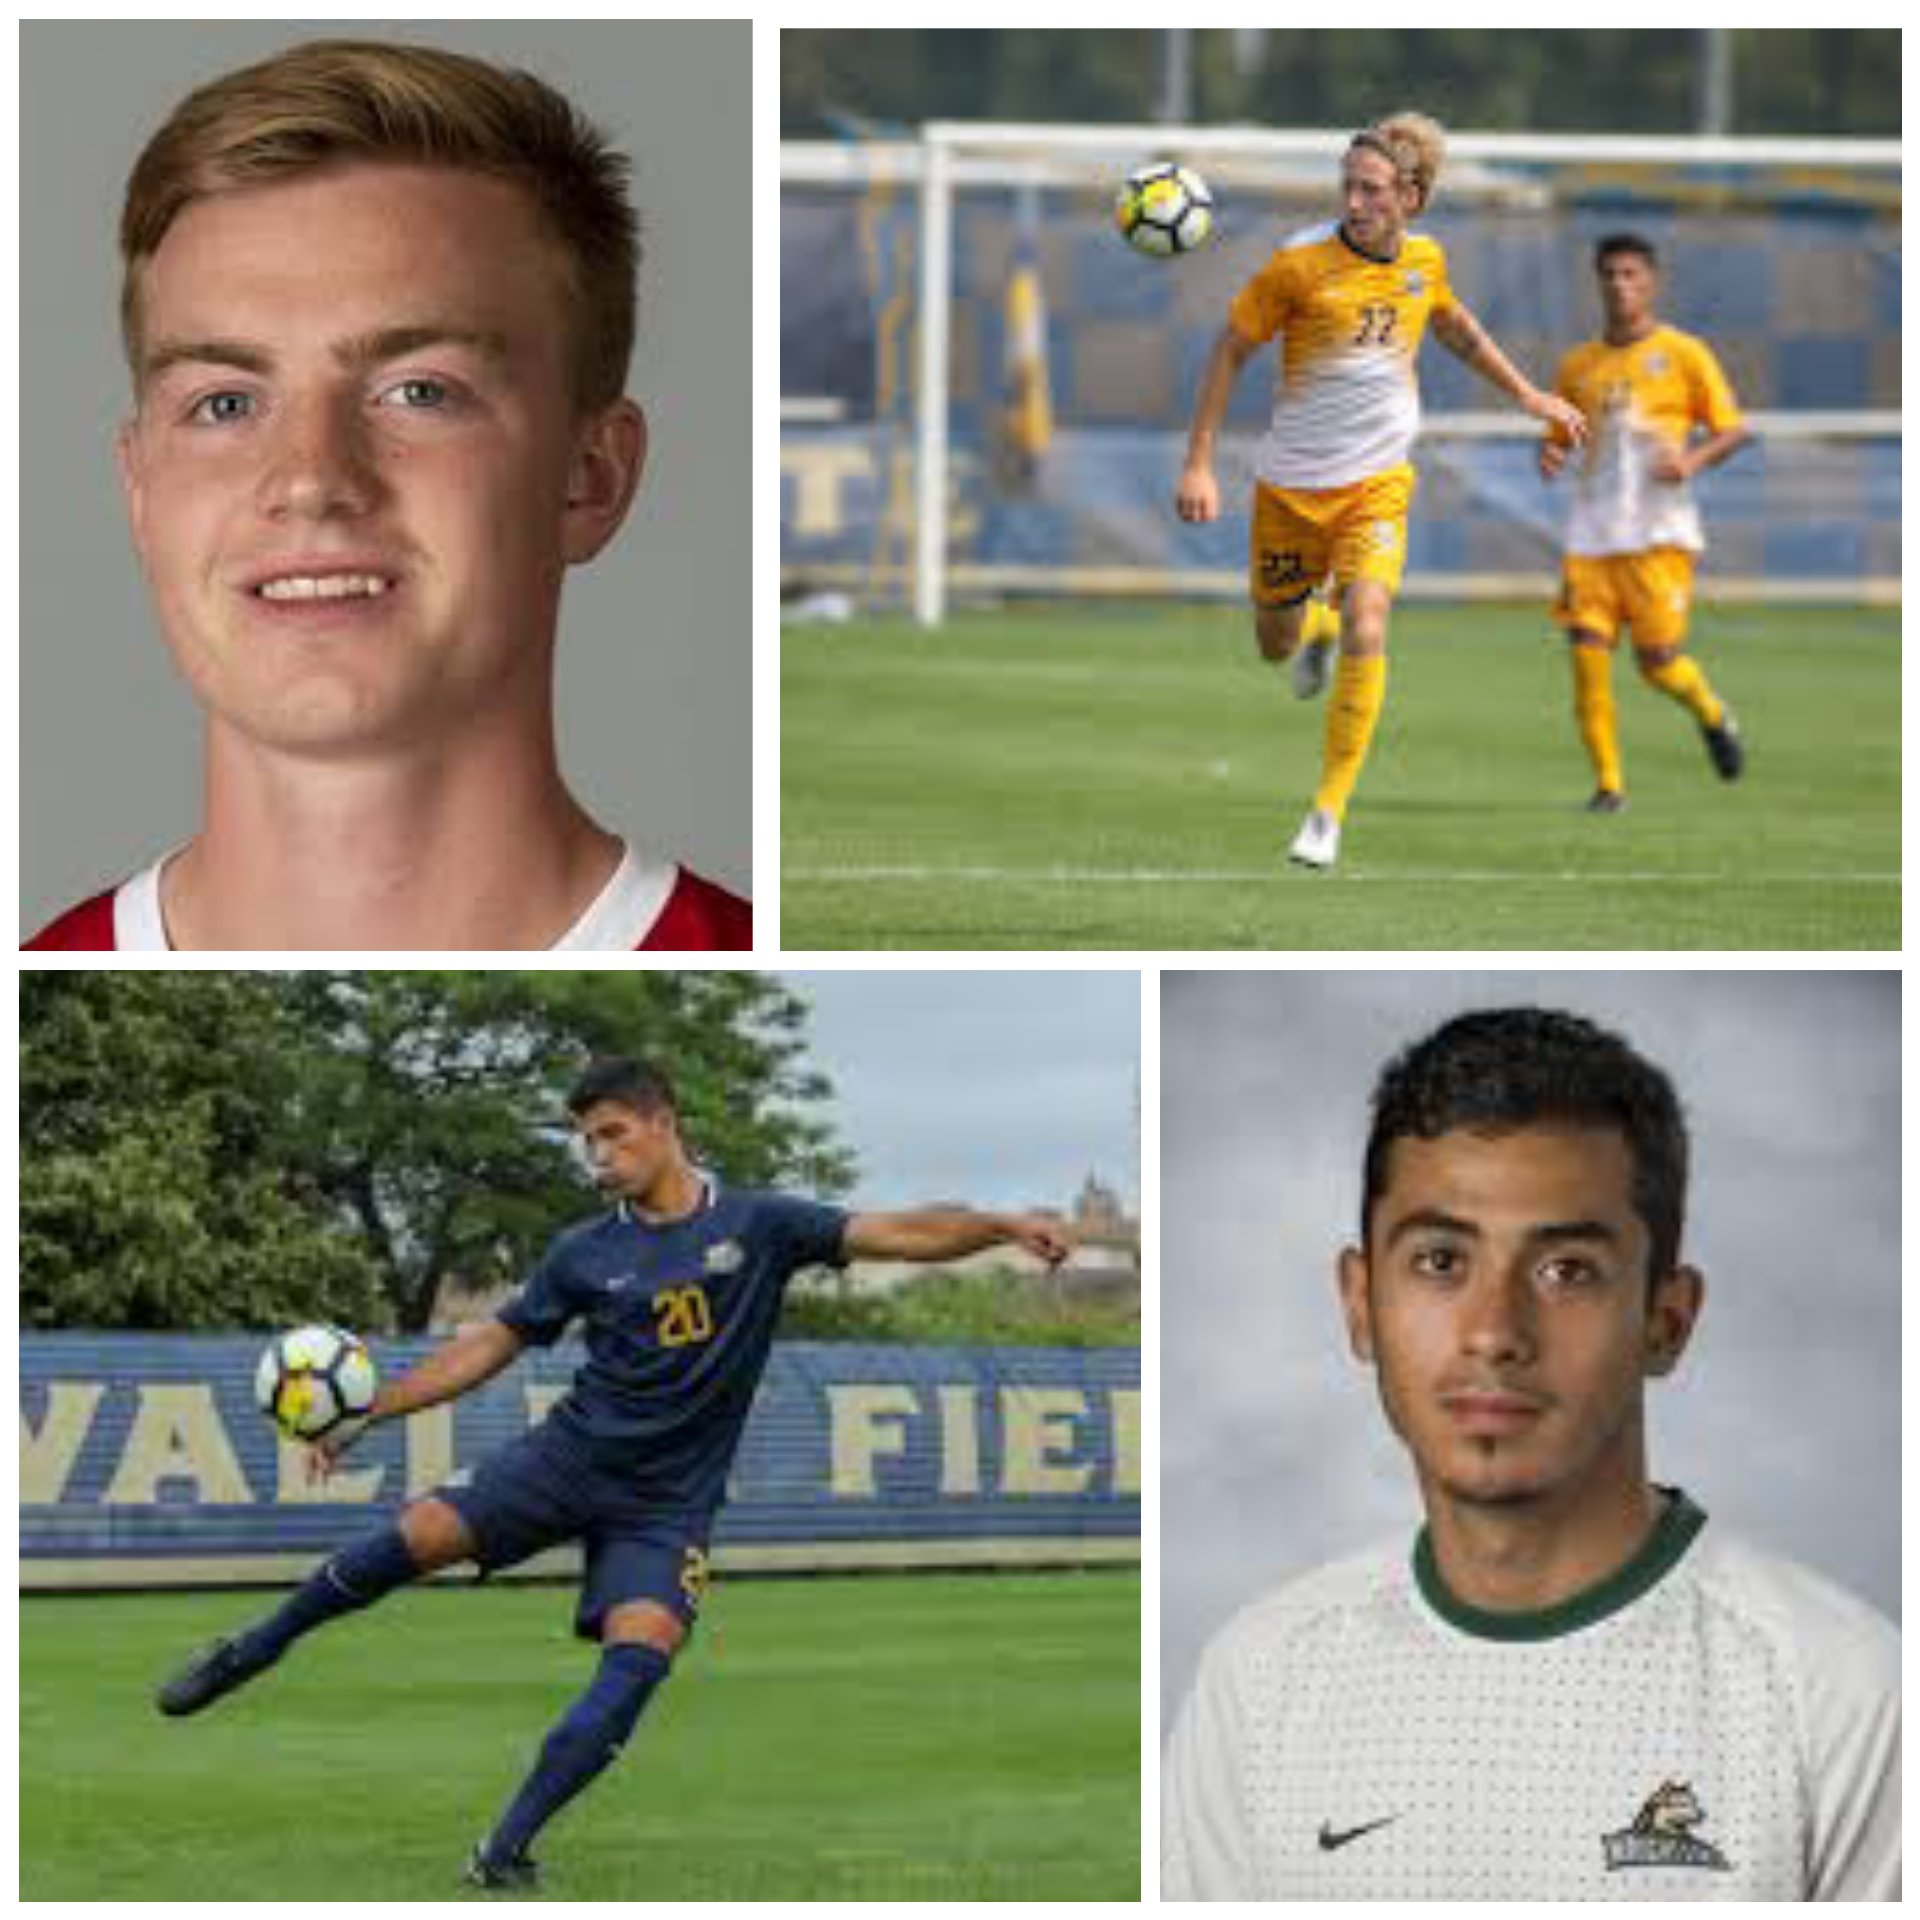 FC Wisconsin Alums Continue To Find Collegiate Success